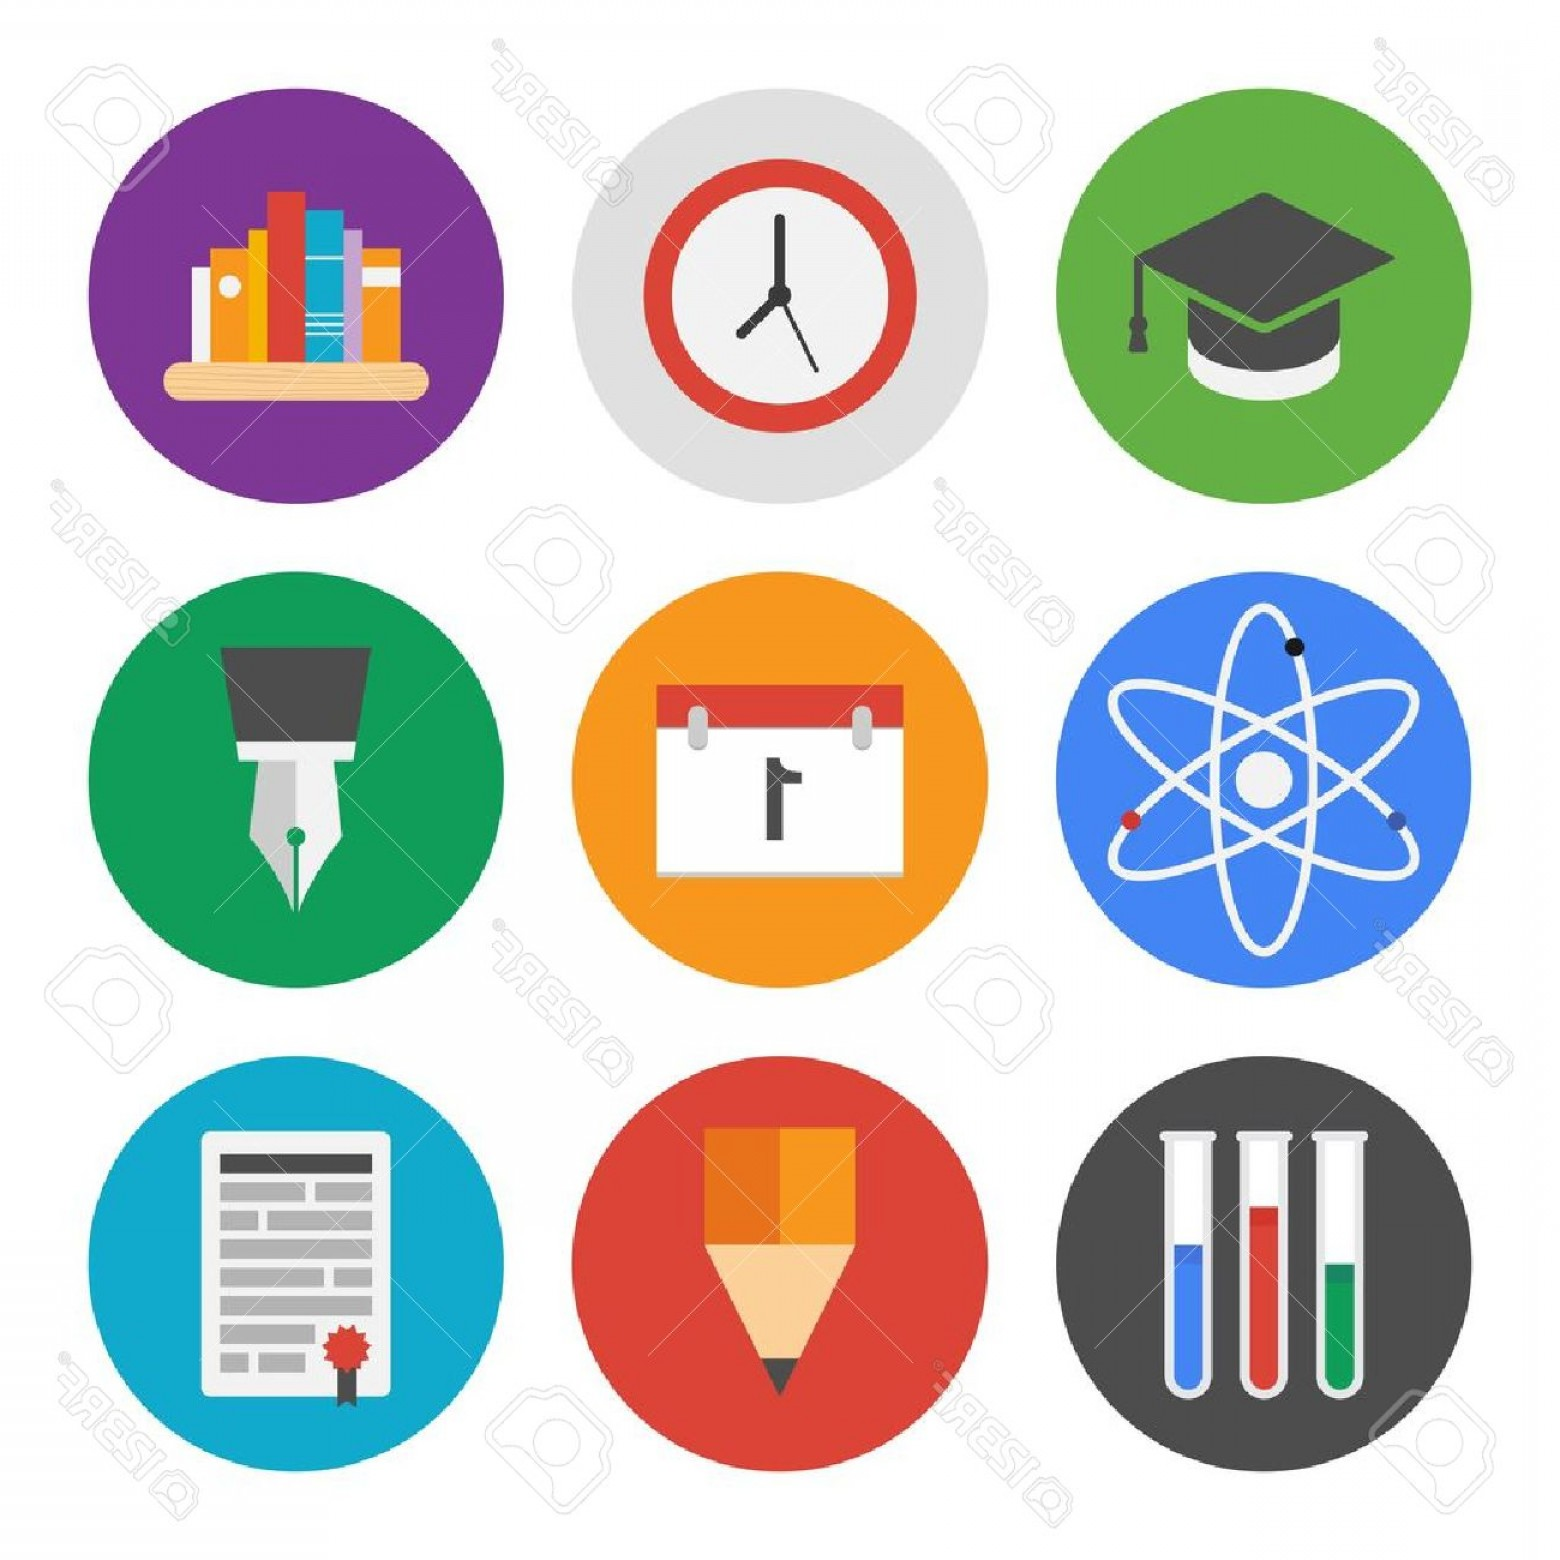 Free Vector Flat Education Icons: Photocollection Of Colorful Vector Icons In Modern Flat Design Style On Knowledge And Education Theme Iso